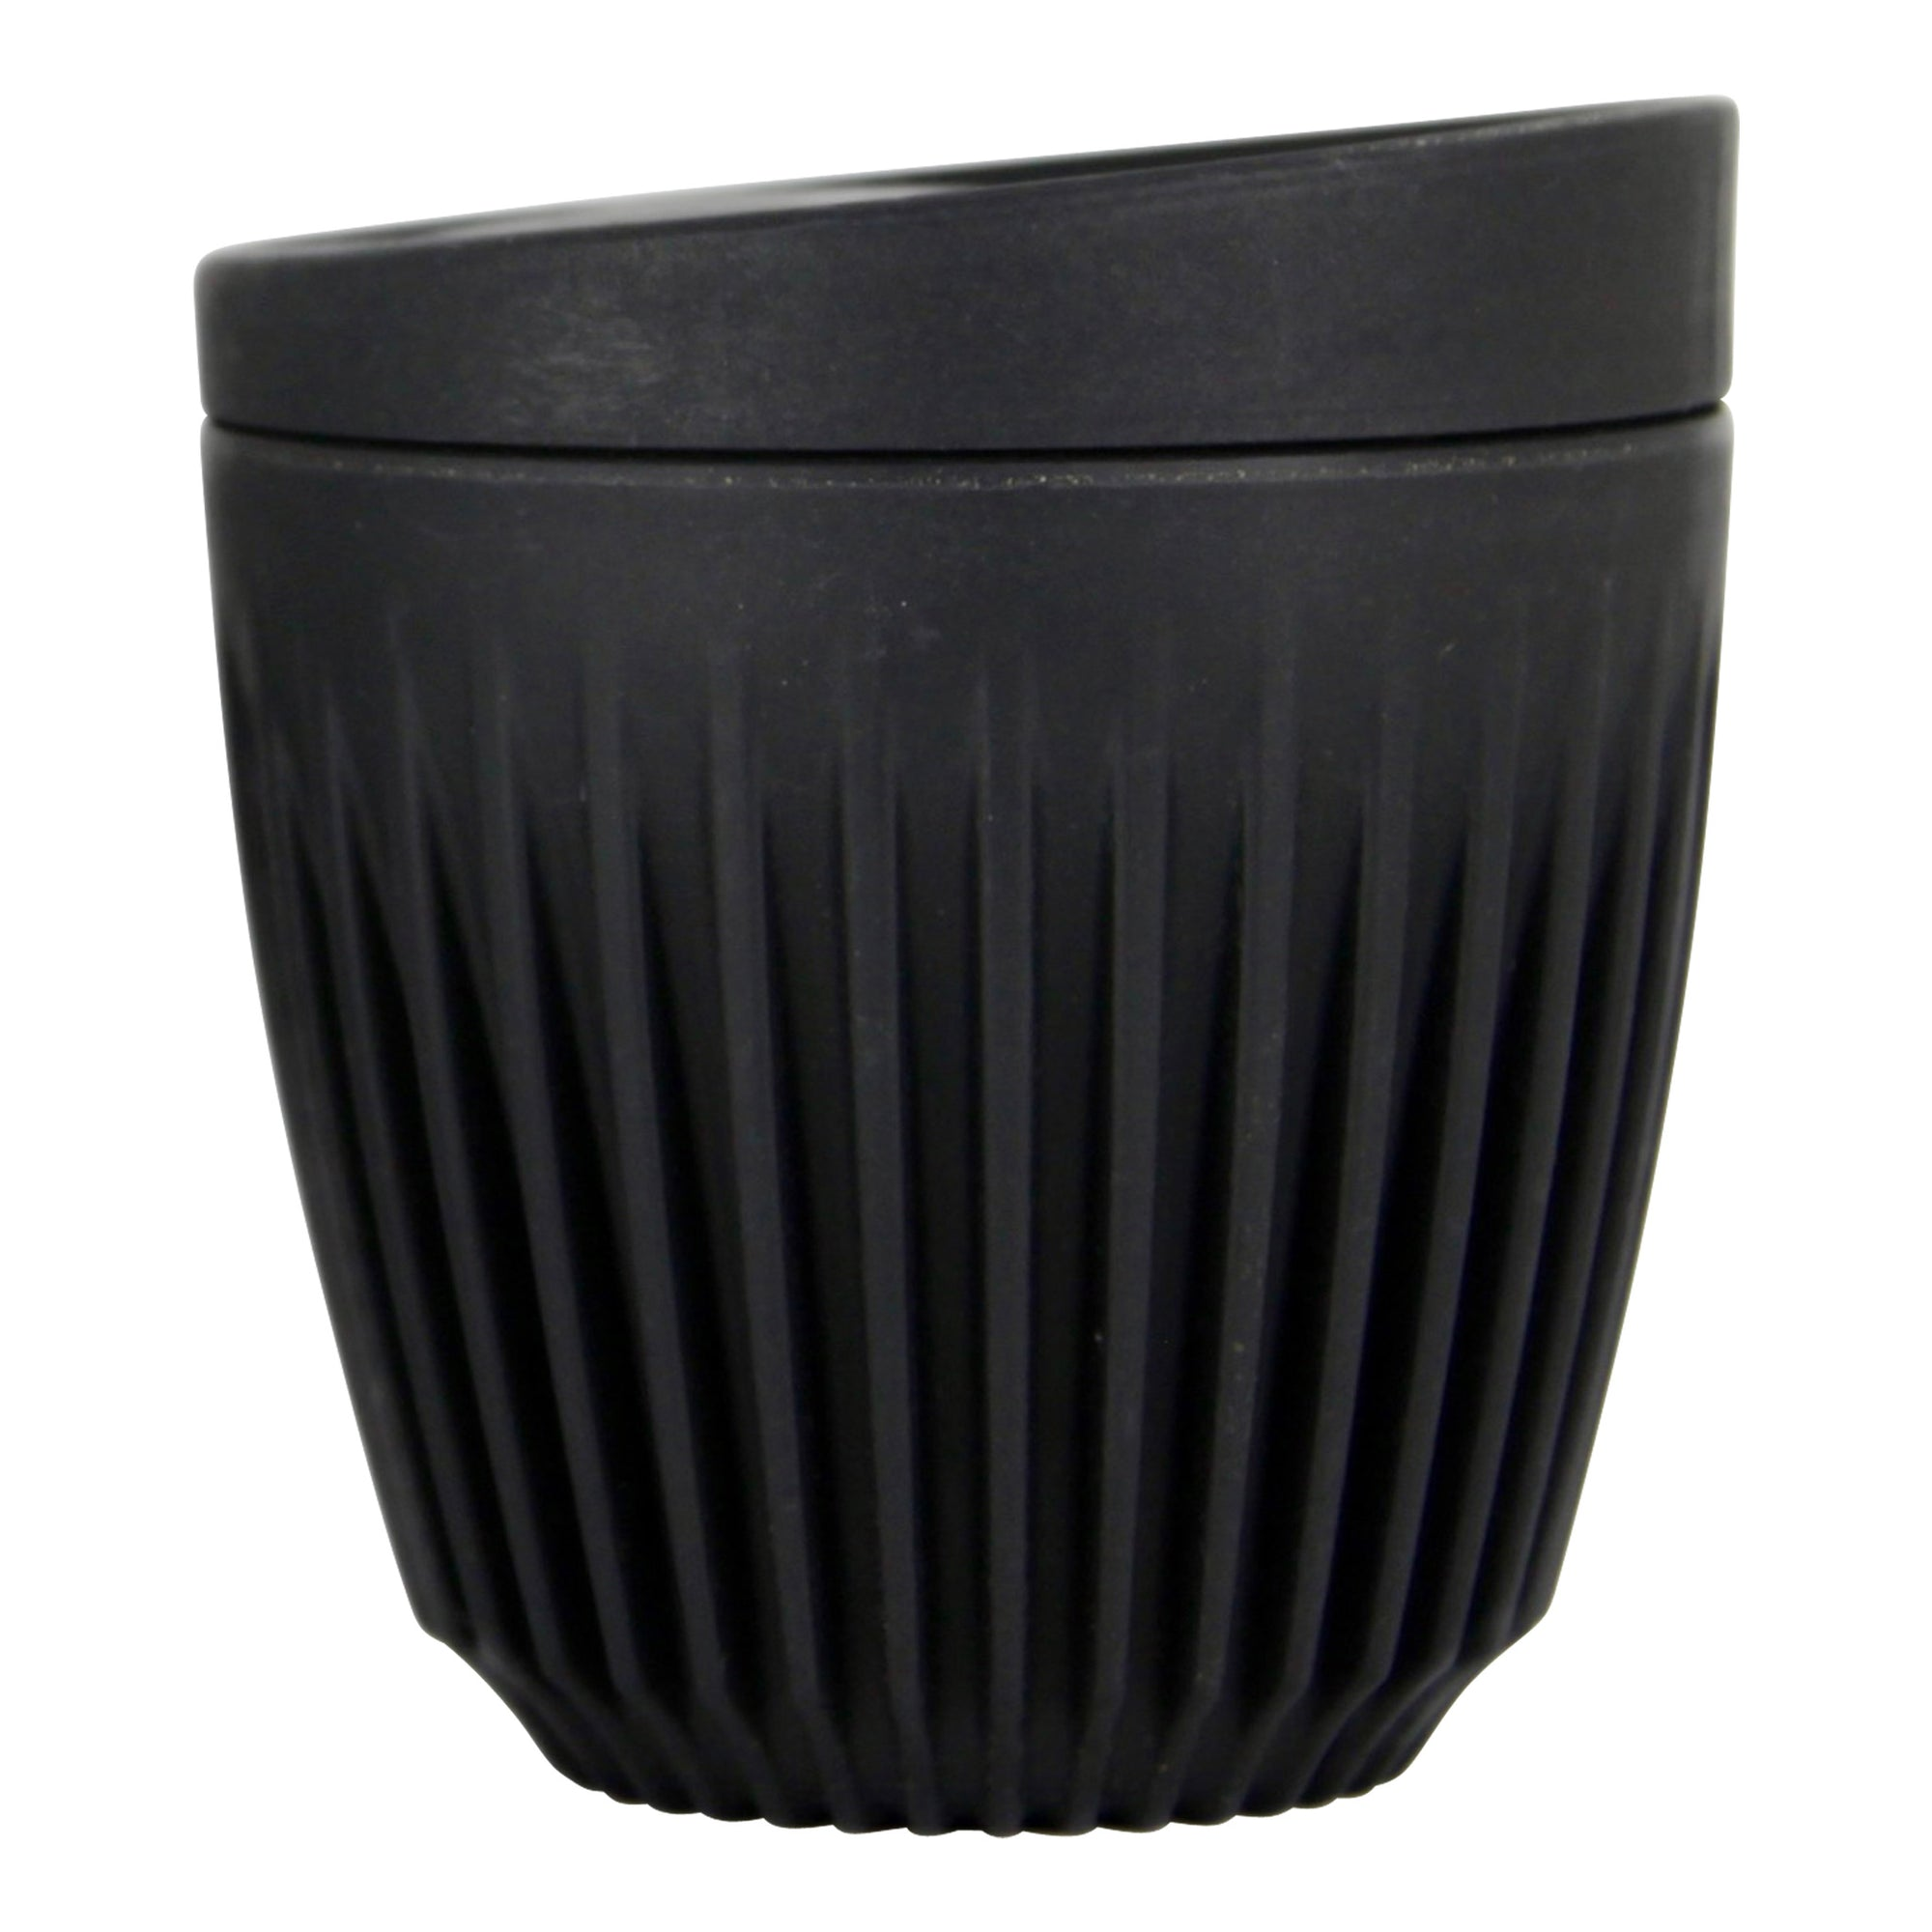 HuskeeCup - Charcoal 6oz / 175ml with lid - Espresso Gear